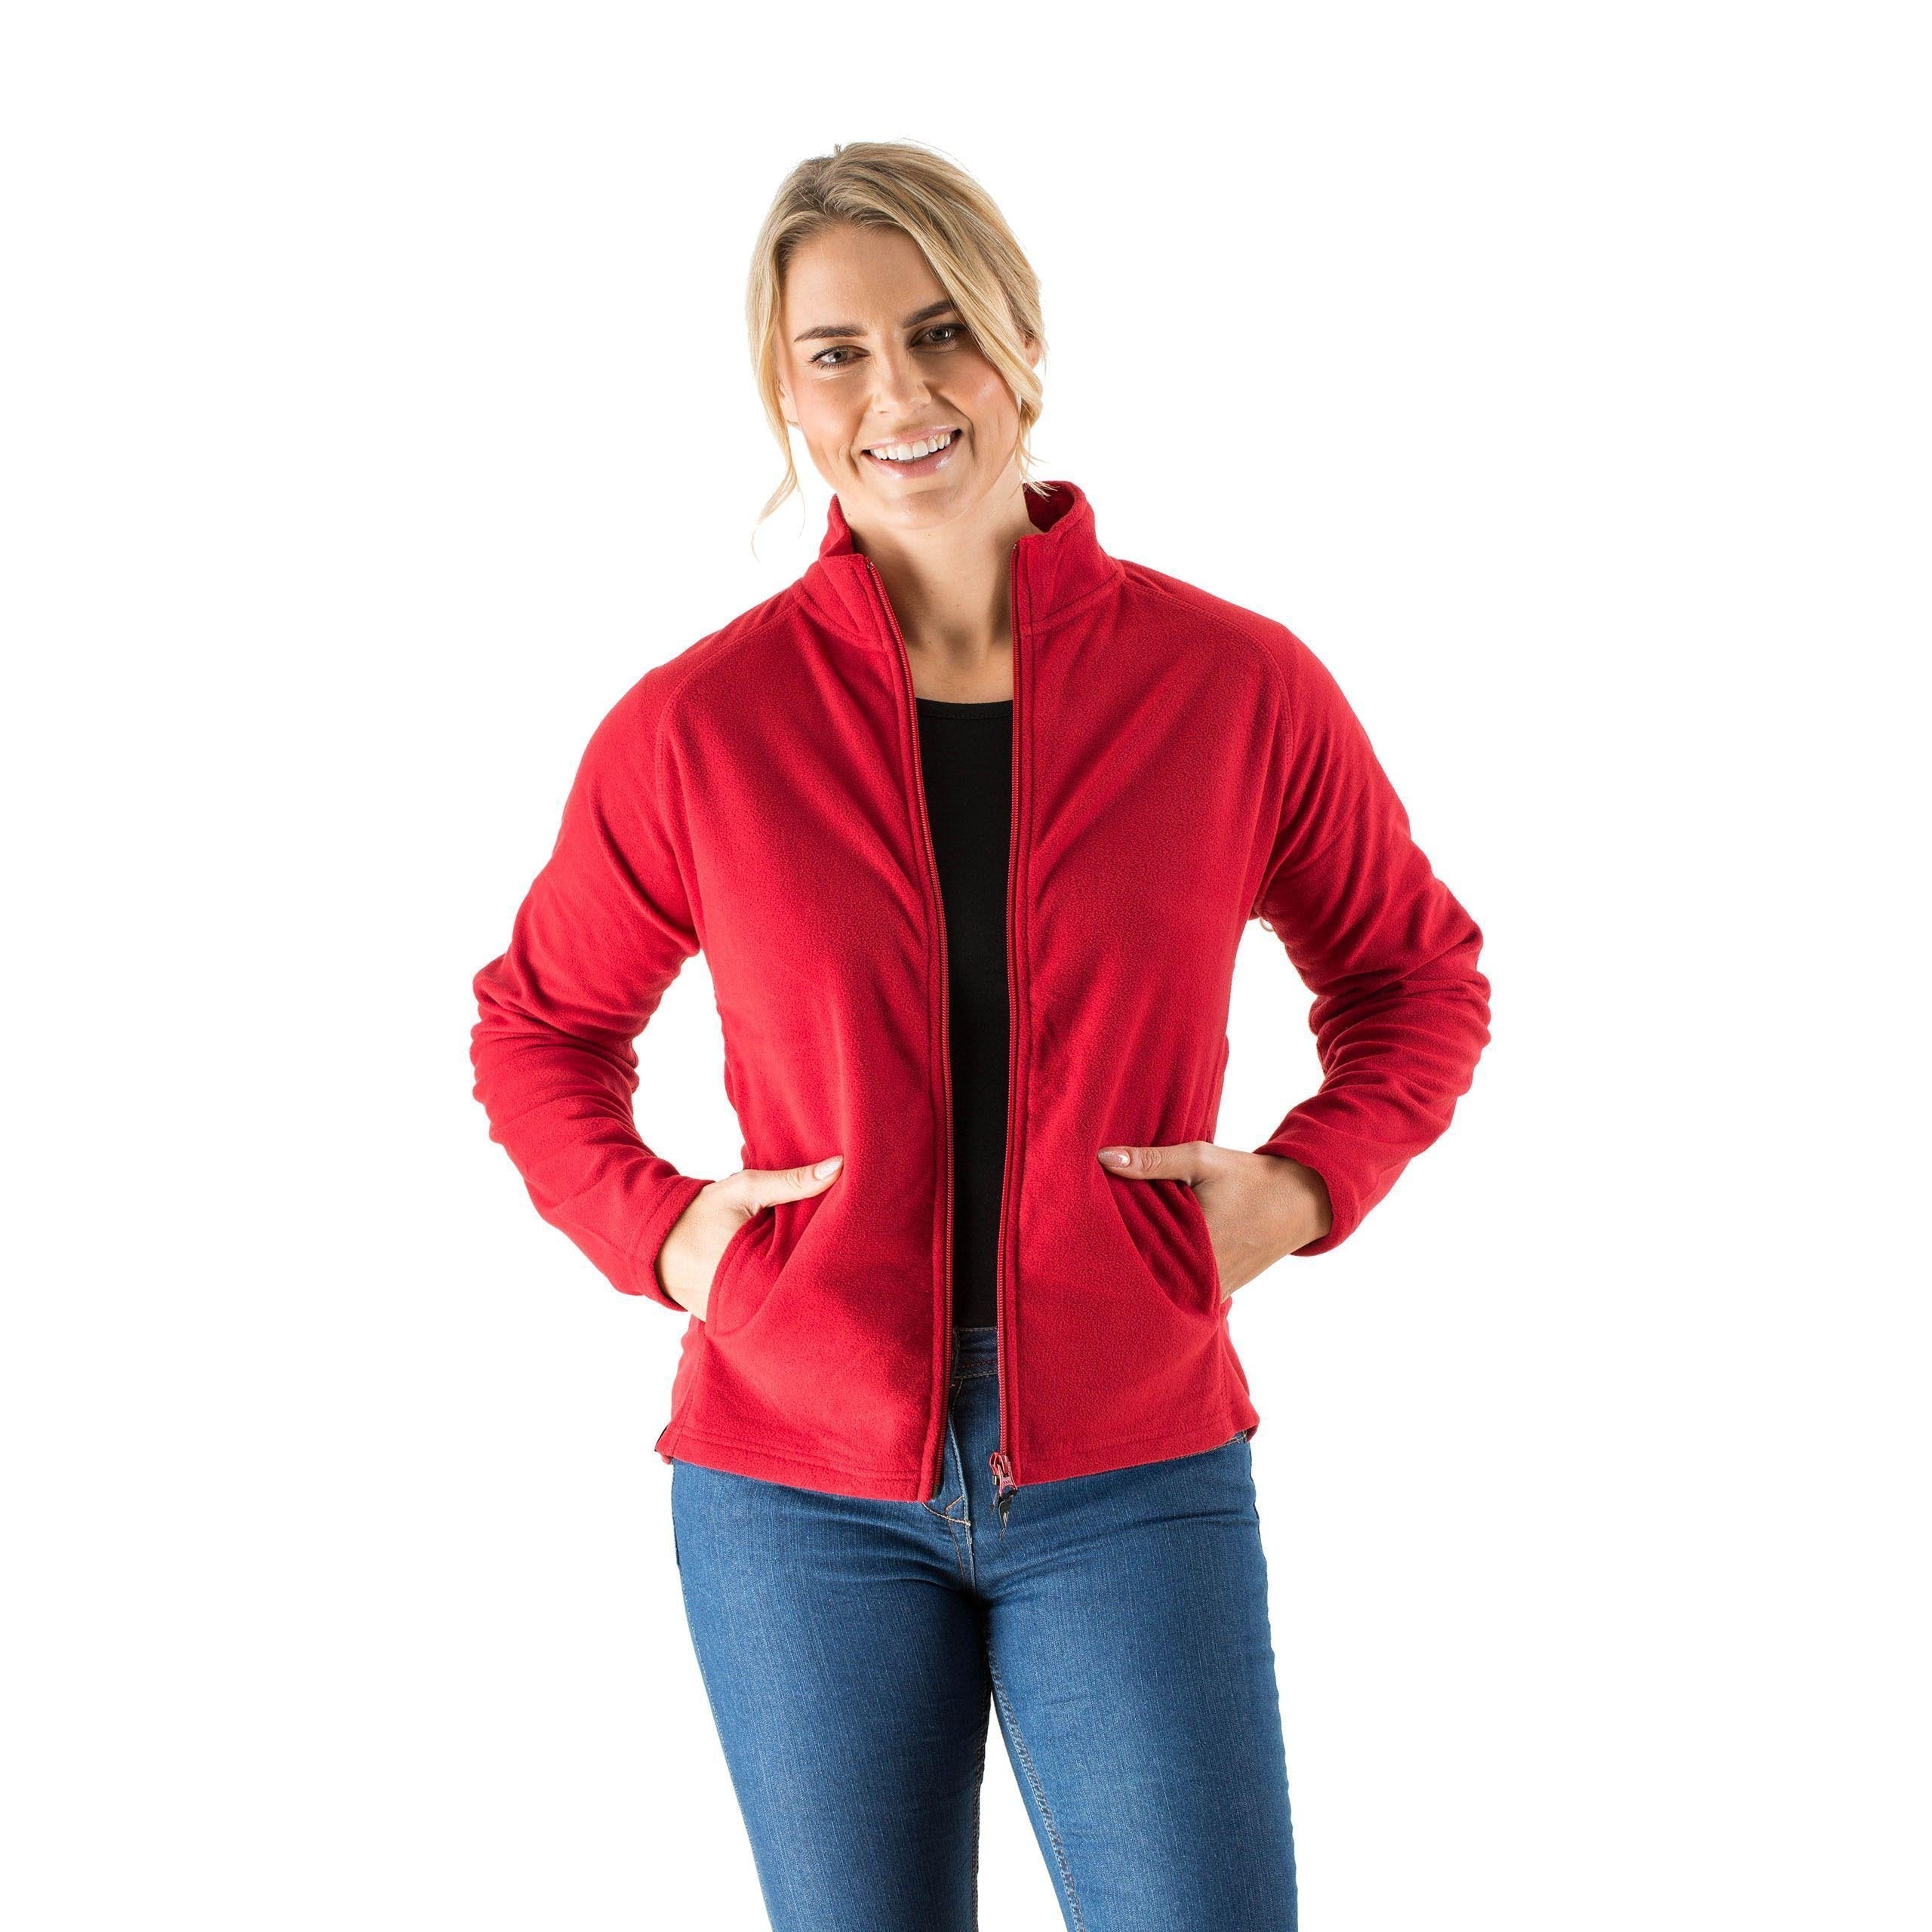 collections/Womens_midlayer_Jacket_Red_open_7020845e-7e75-4a7d-9240-4abf70a65f7a.jpg